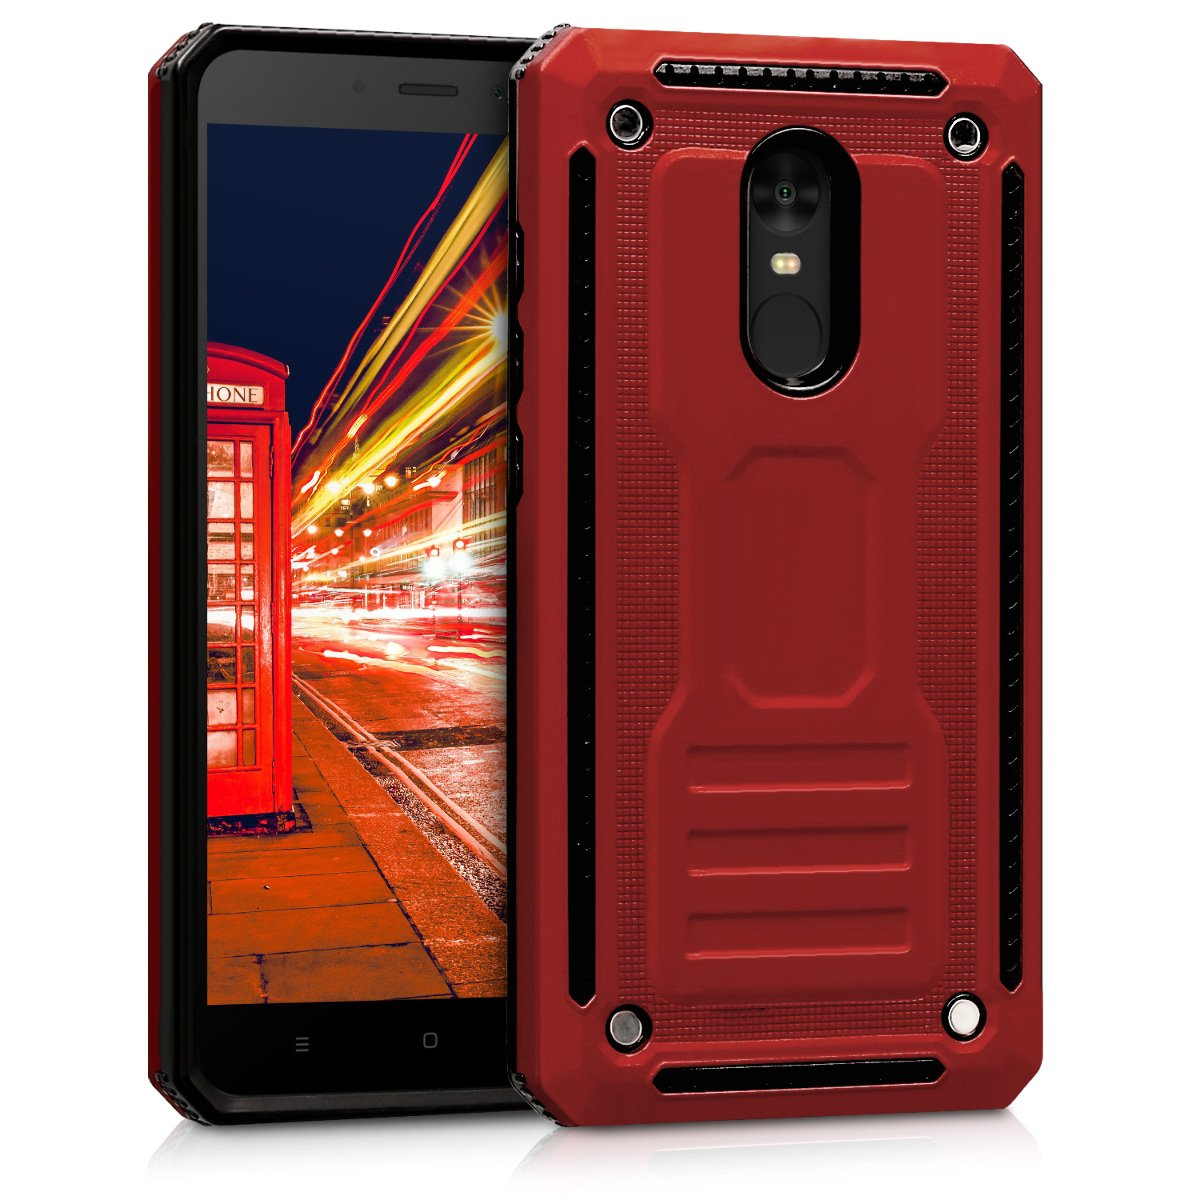 official photos 654c9 96936 kwmobile Full Armor Case for Xiaomi Redmi Note 4 / Note 4X - Heavy Duty  Shockproof Protective Hybrid Case Cover - Red/Black